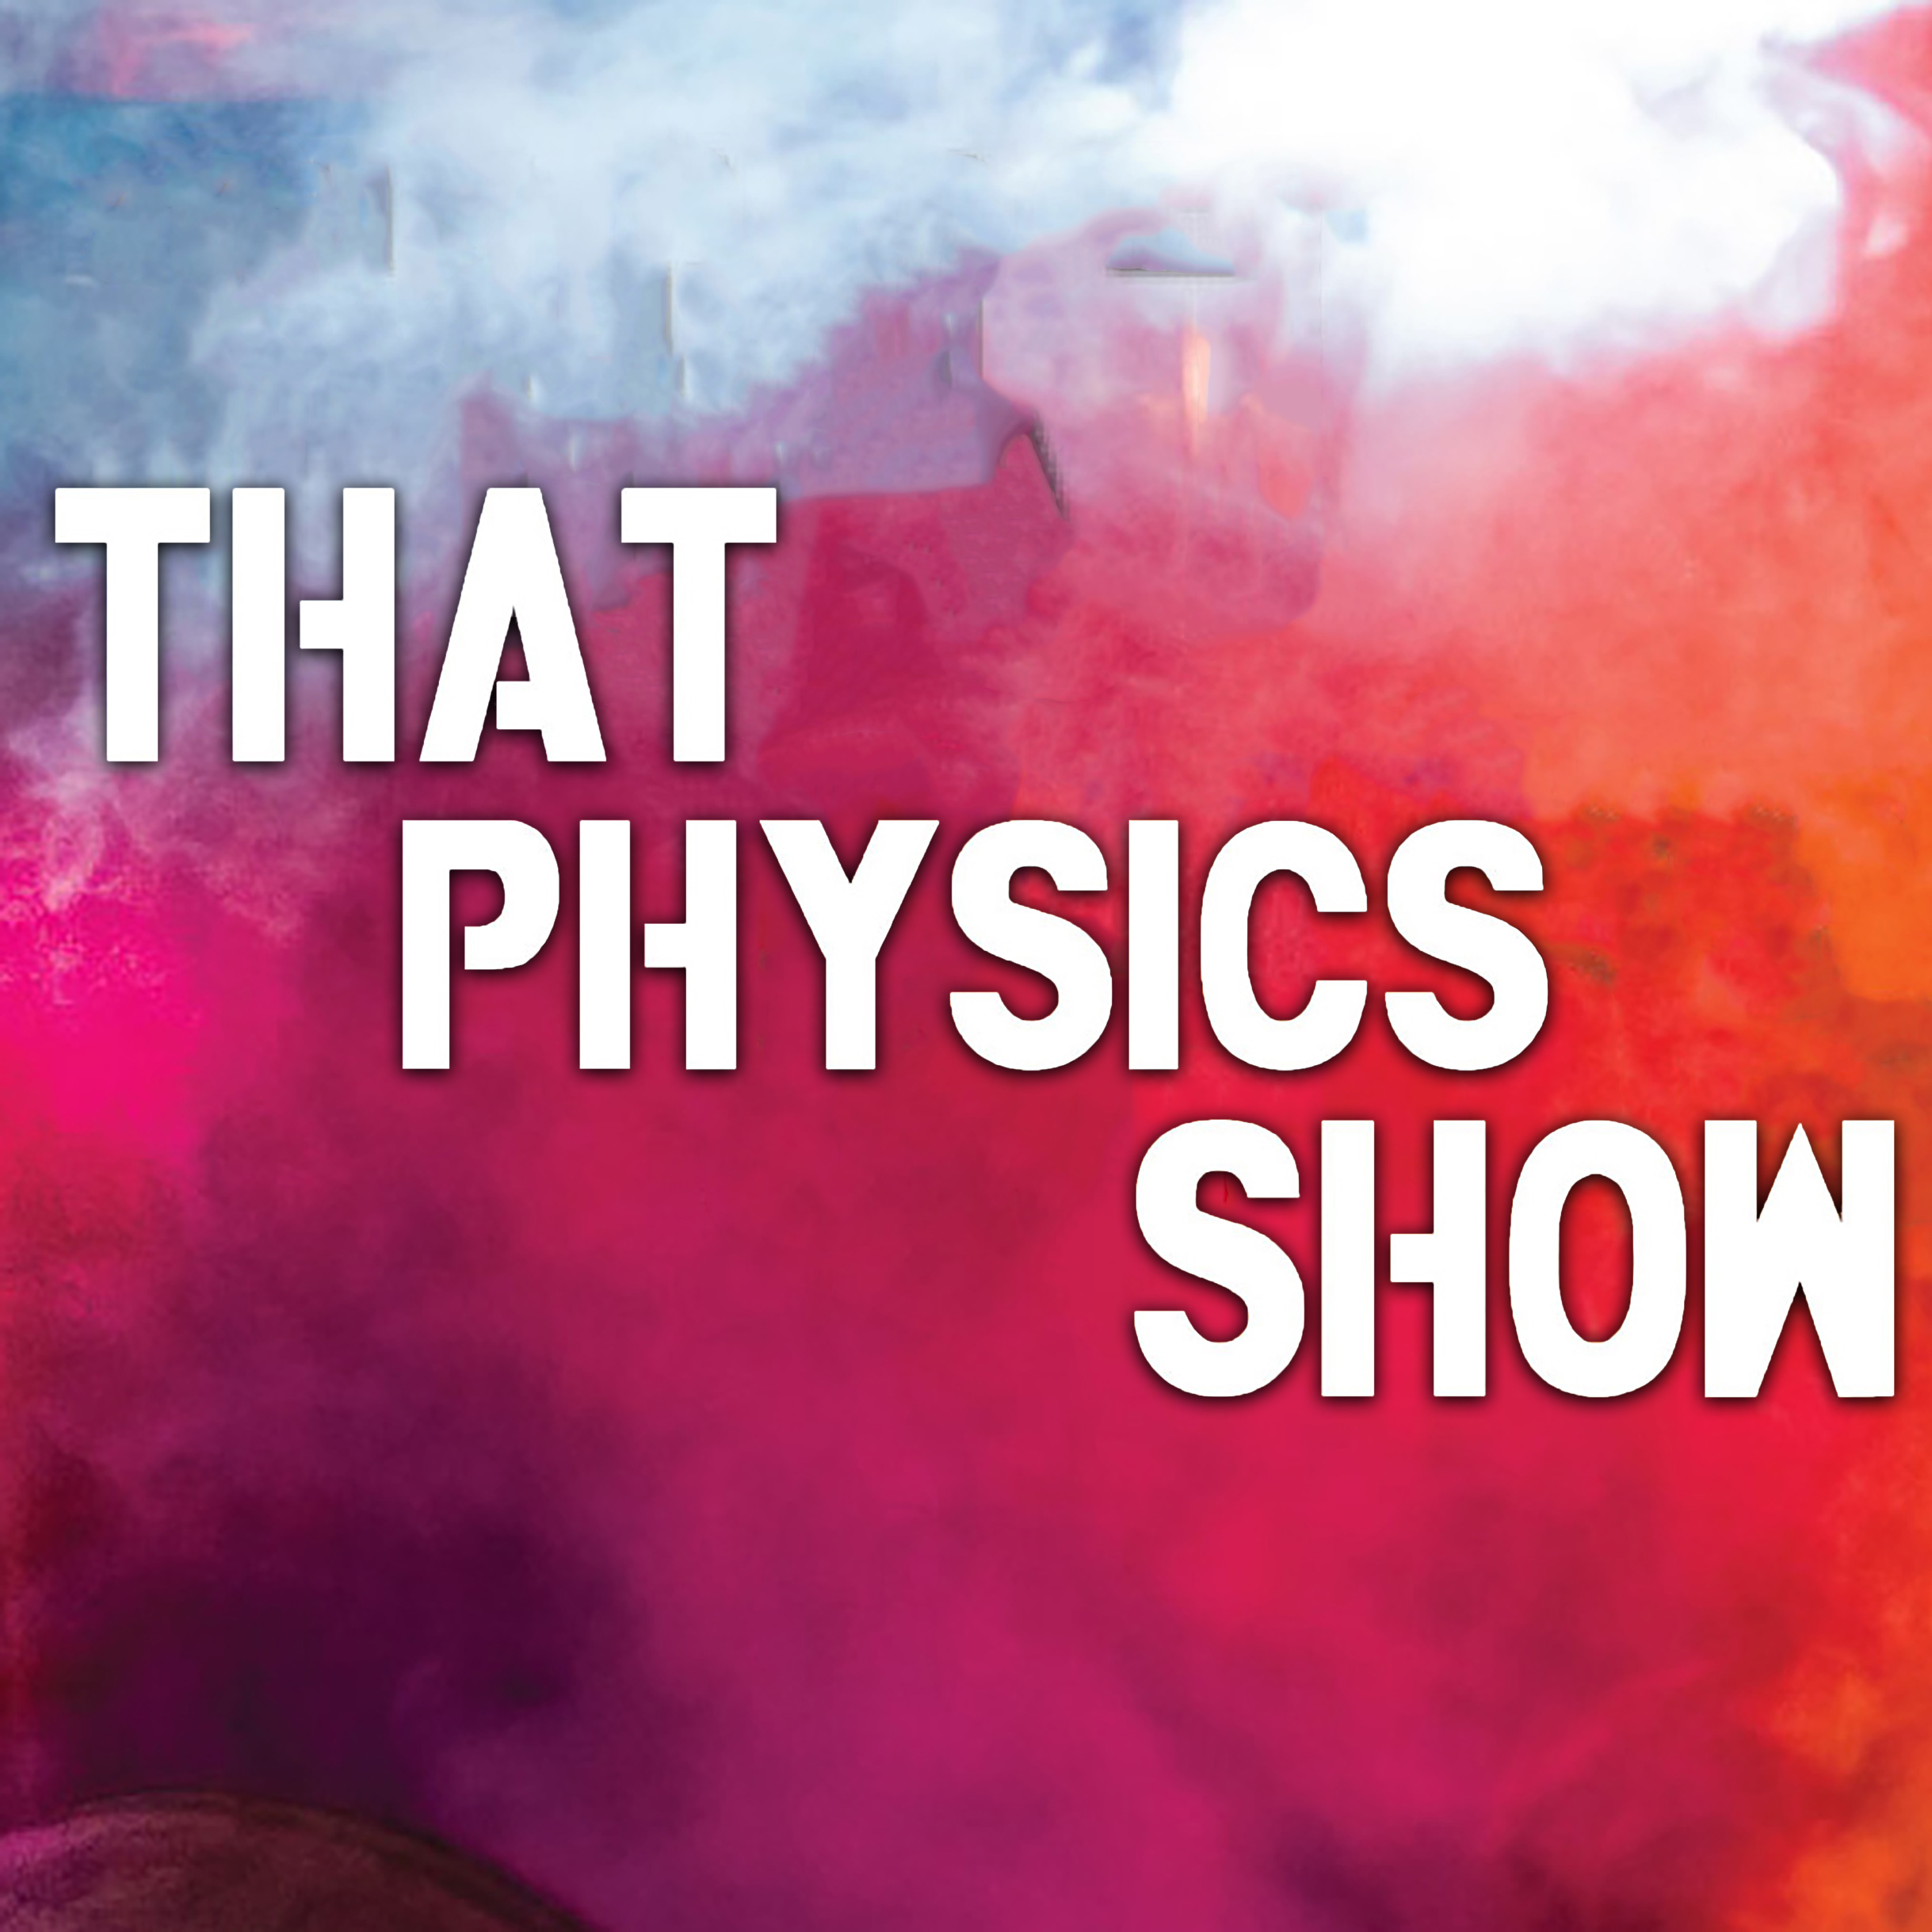 THAT PHYSICS SHOW-NY TIMES Review: 'Outrageous Acts of Danger'